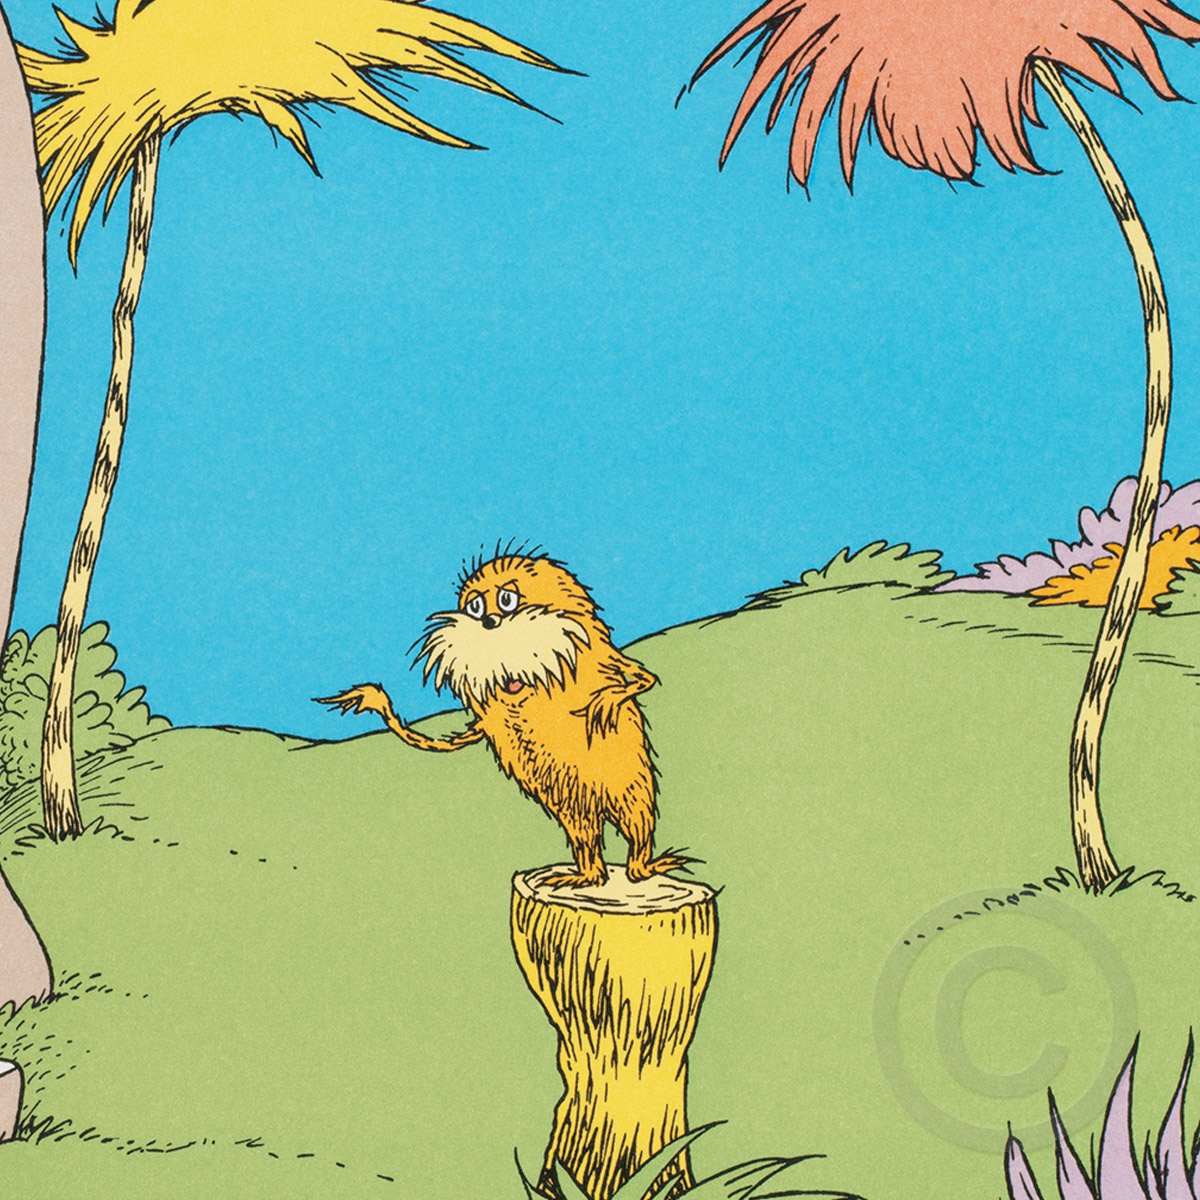 I Am The Lorax I Speak For The Trees The Art Of Dr Seuss